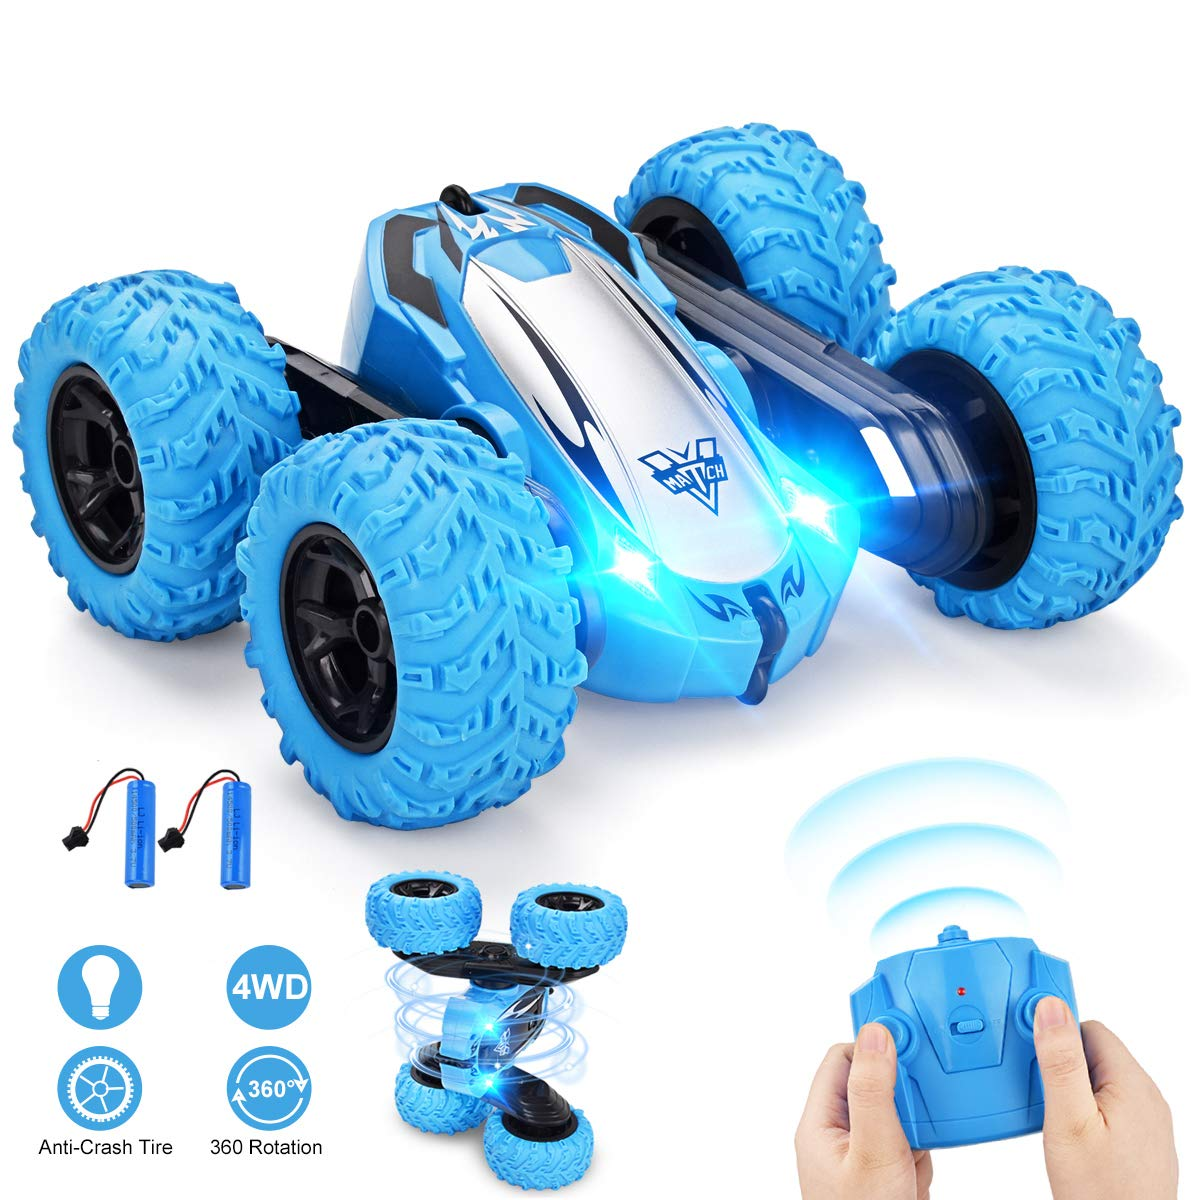 Remote Control Car, Villana RC Cars 4WD 2.4GHz Stunt Car Double Sided 360° Flips Remote Control Toys for Kids Christmas Birthday Gifts